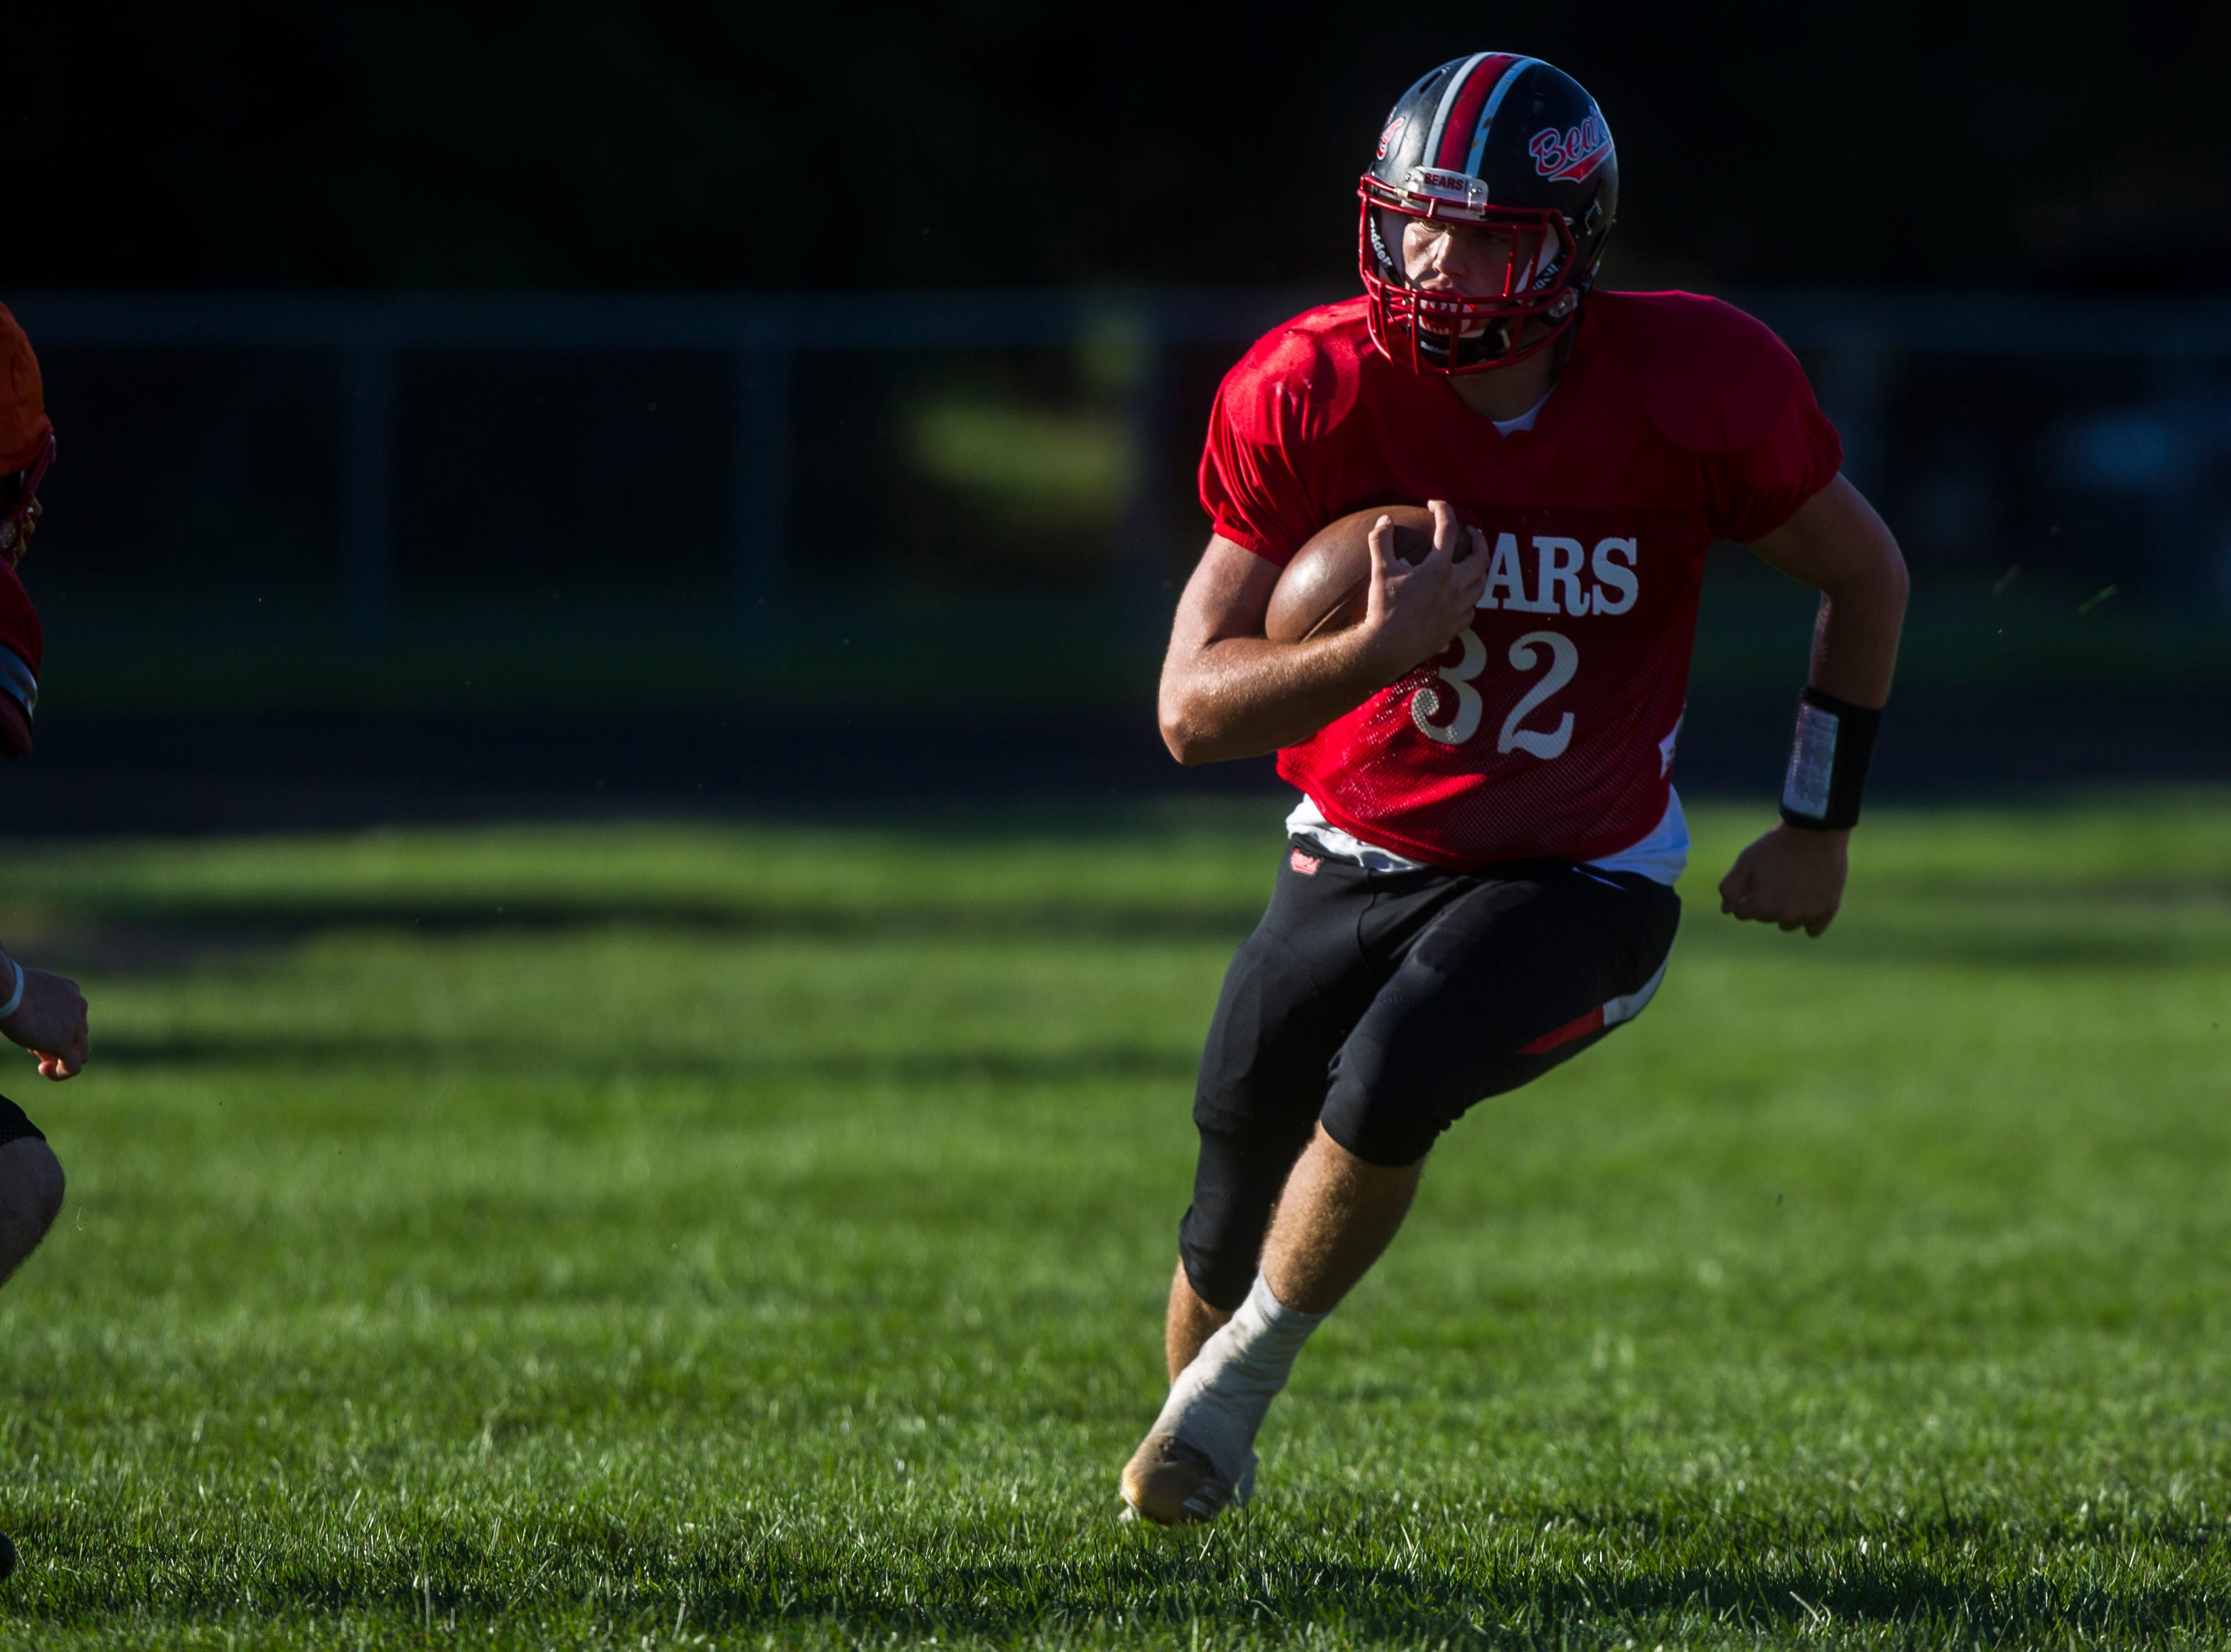 West Branch's Tanner Lukavsky runs with the ball during a varsity football practice on Tuesday, Sept. 11, 2018, at the West Branch High School practice field.